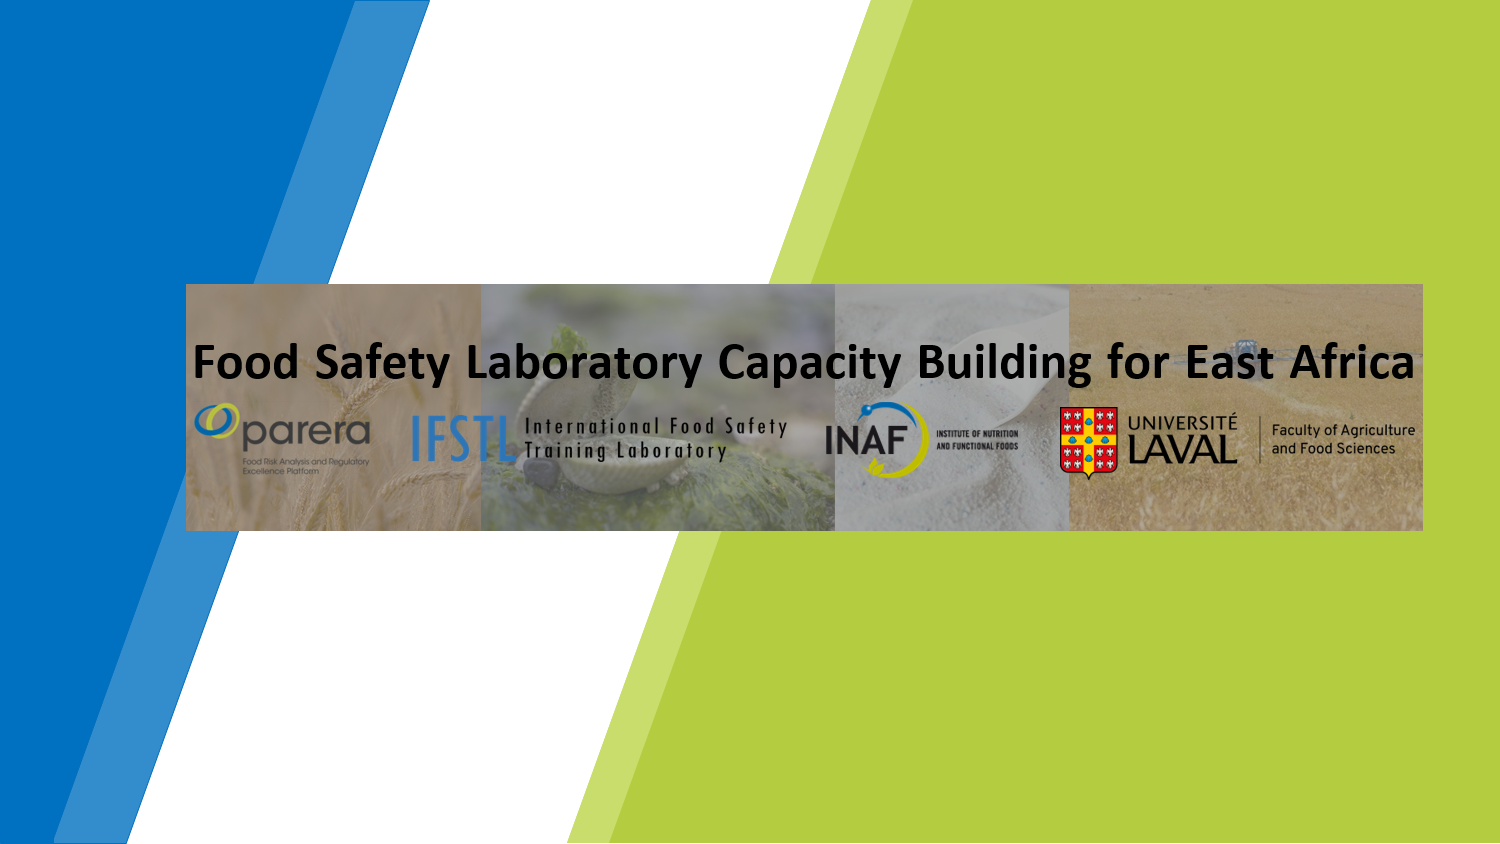 Food Safety Laboratory Capacity Building for East Africa